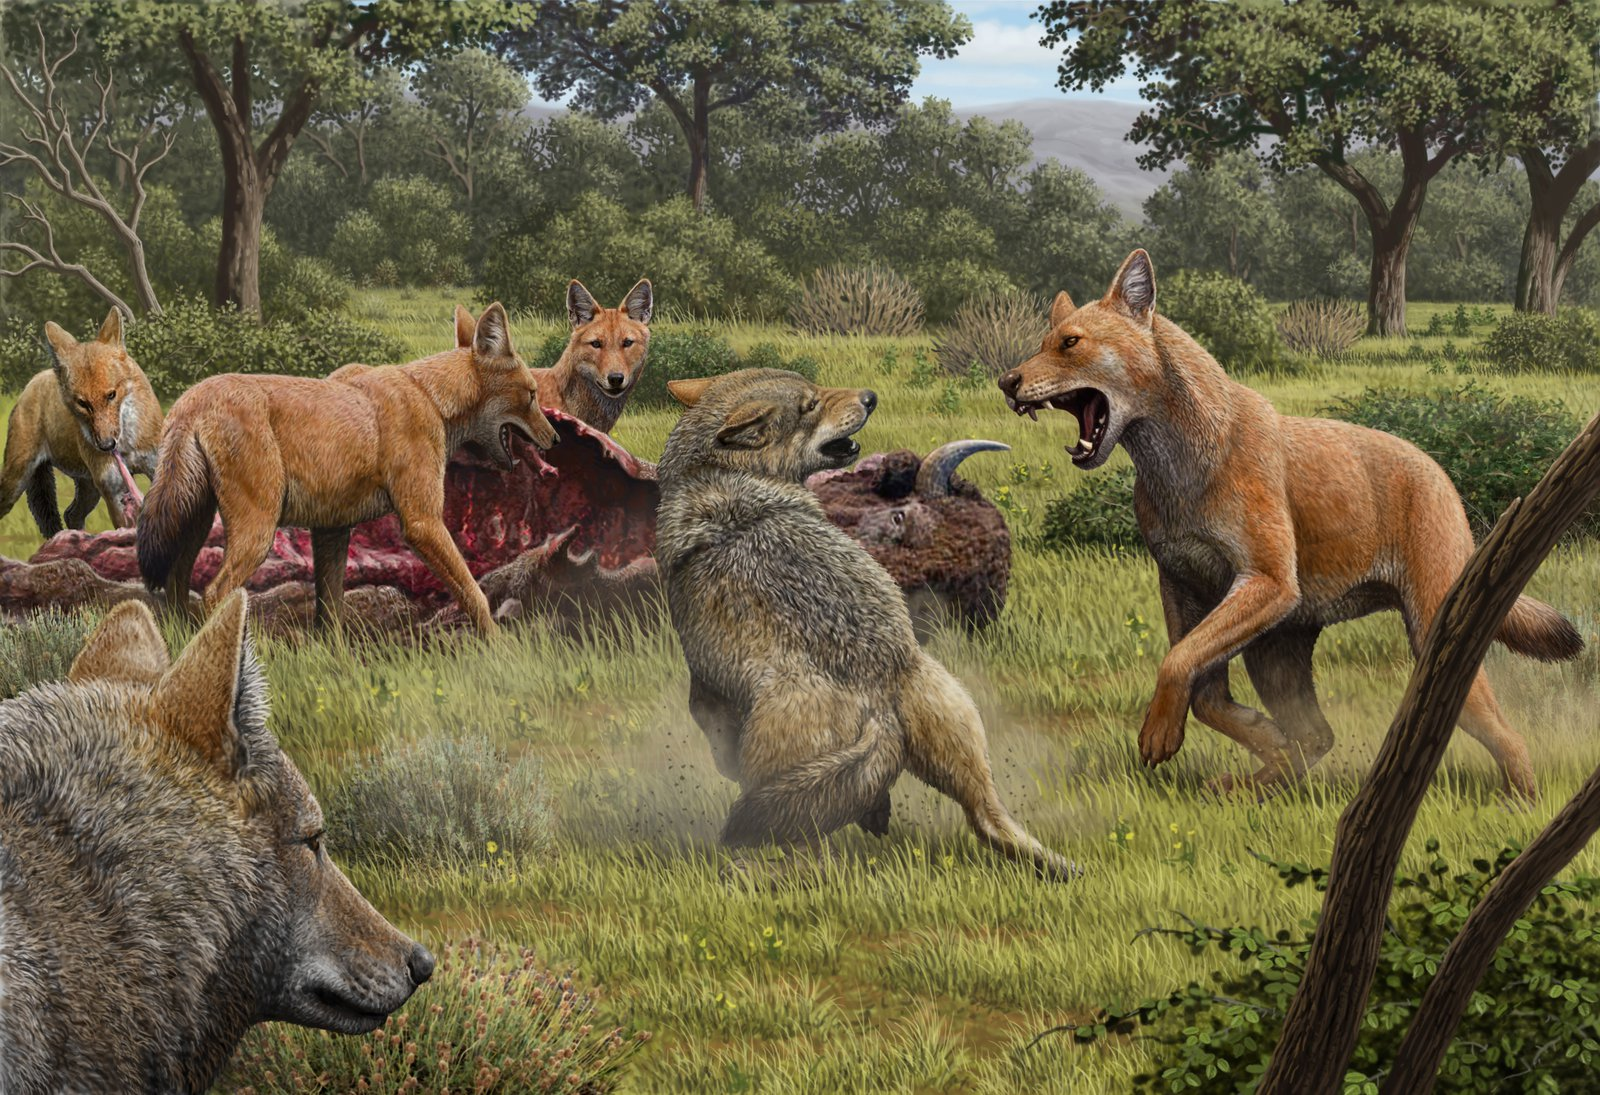 A pack of dire wolves (Canis dirus) are feeding on their bison kill, while a pair of grey wolves (Canis lupus) approach in the hopes of scavenging